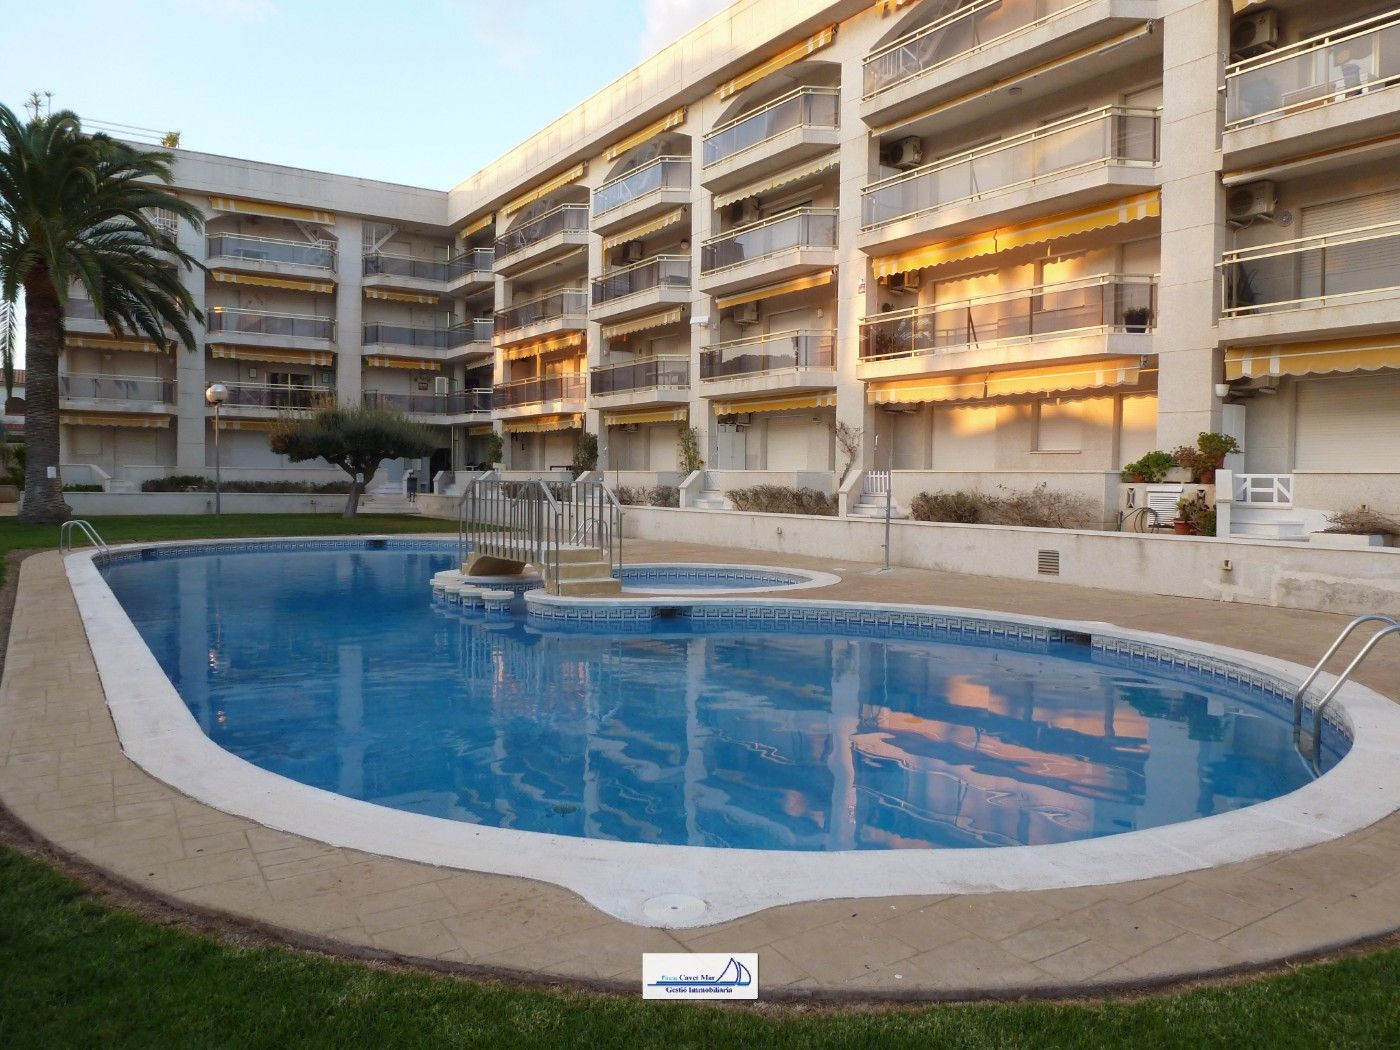 Apartment in Carrer del veler, 10. Atico a 150m de la playa !!!